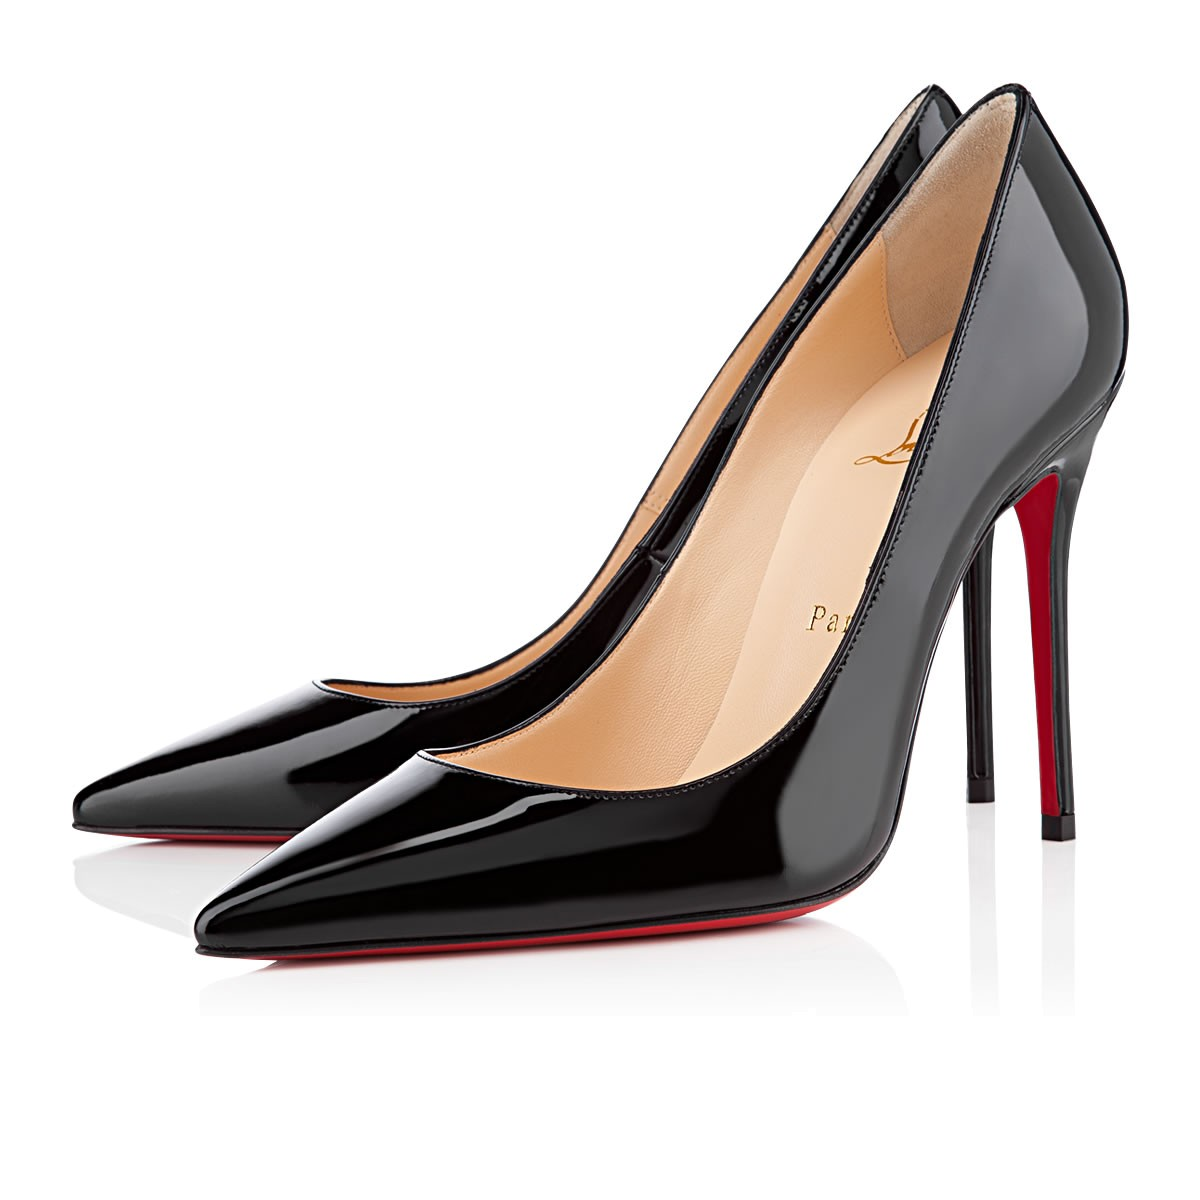 Pigalle Follies 85 Patent-Leather Pumps, Black from Christian Louboutin